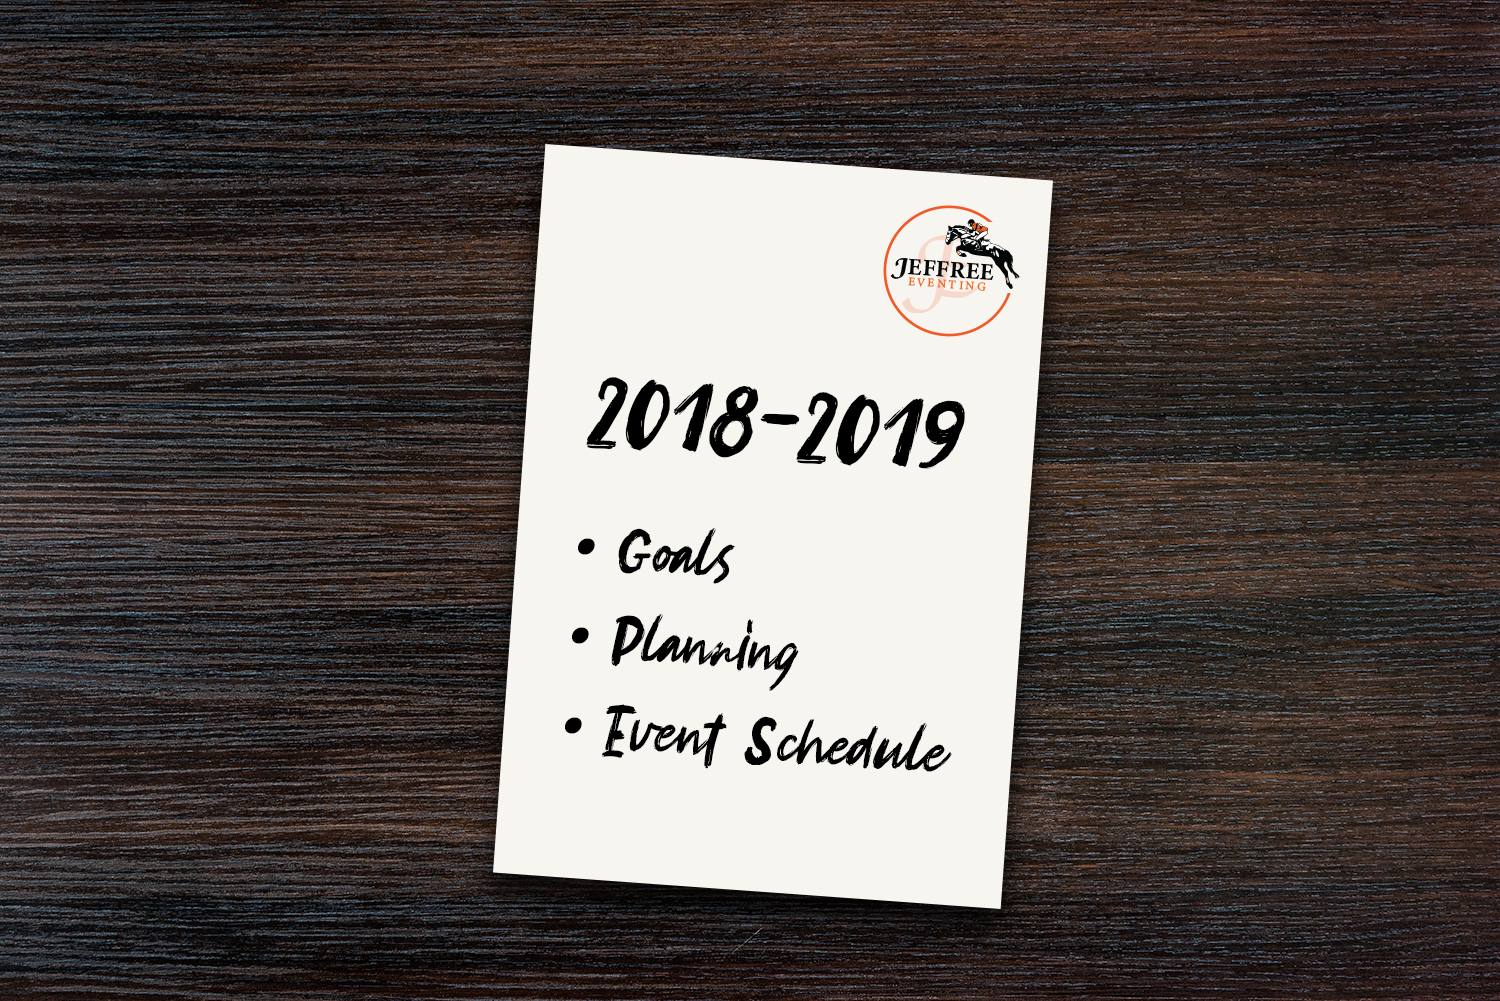 Preparing for the new season: goals, planning and event schedule